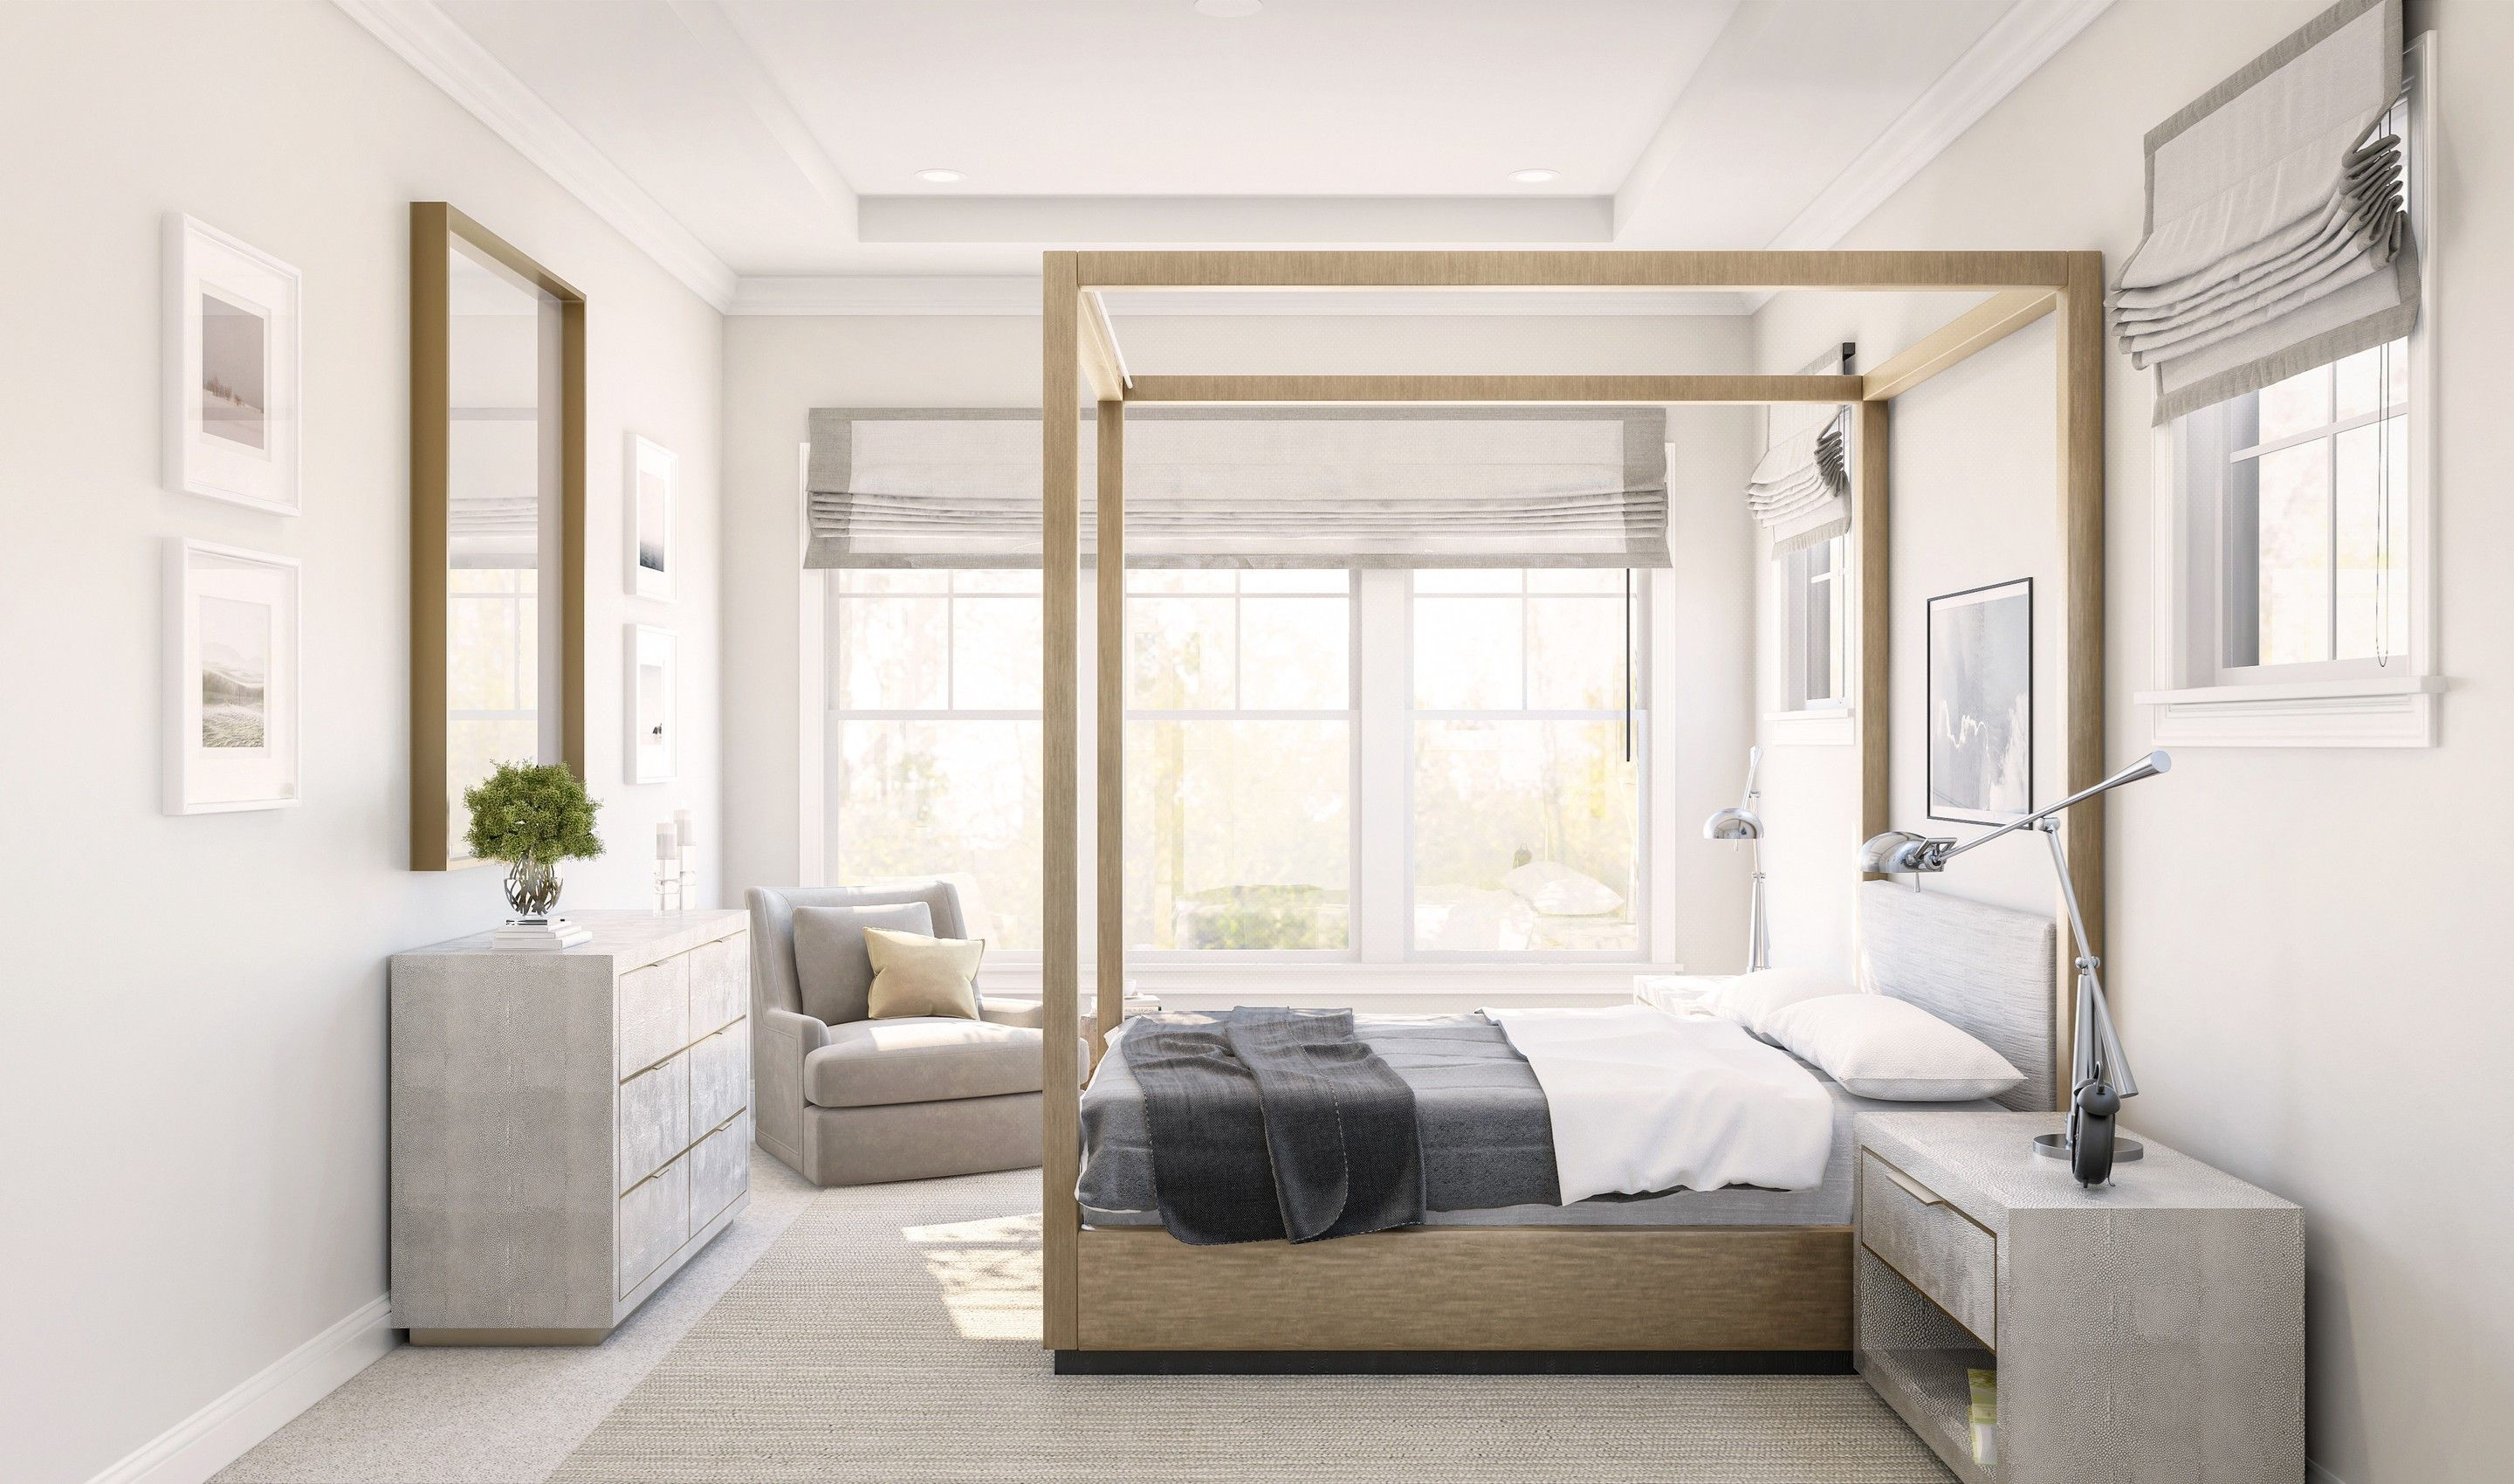 Bedroom featured in the Dorchester By K. Hovnanian's® Four Seasons in Monmouth County, NJ